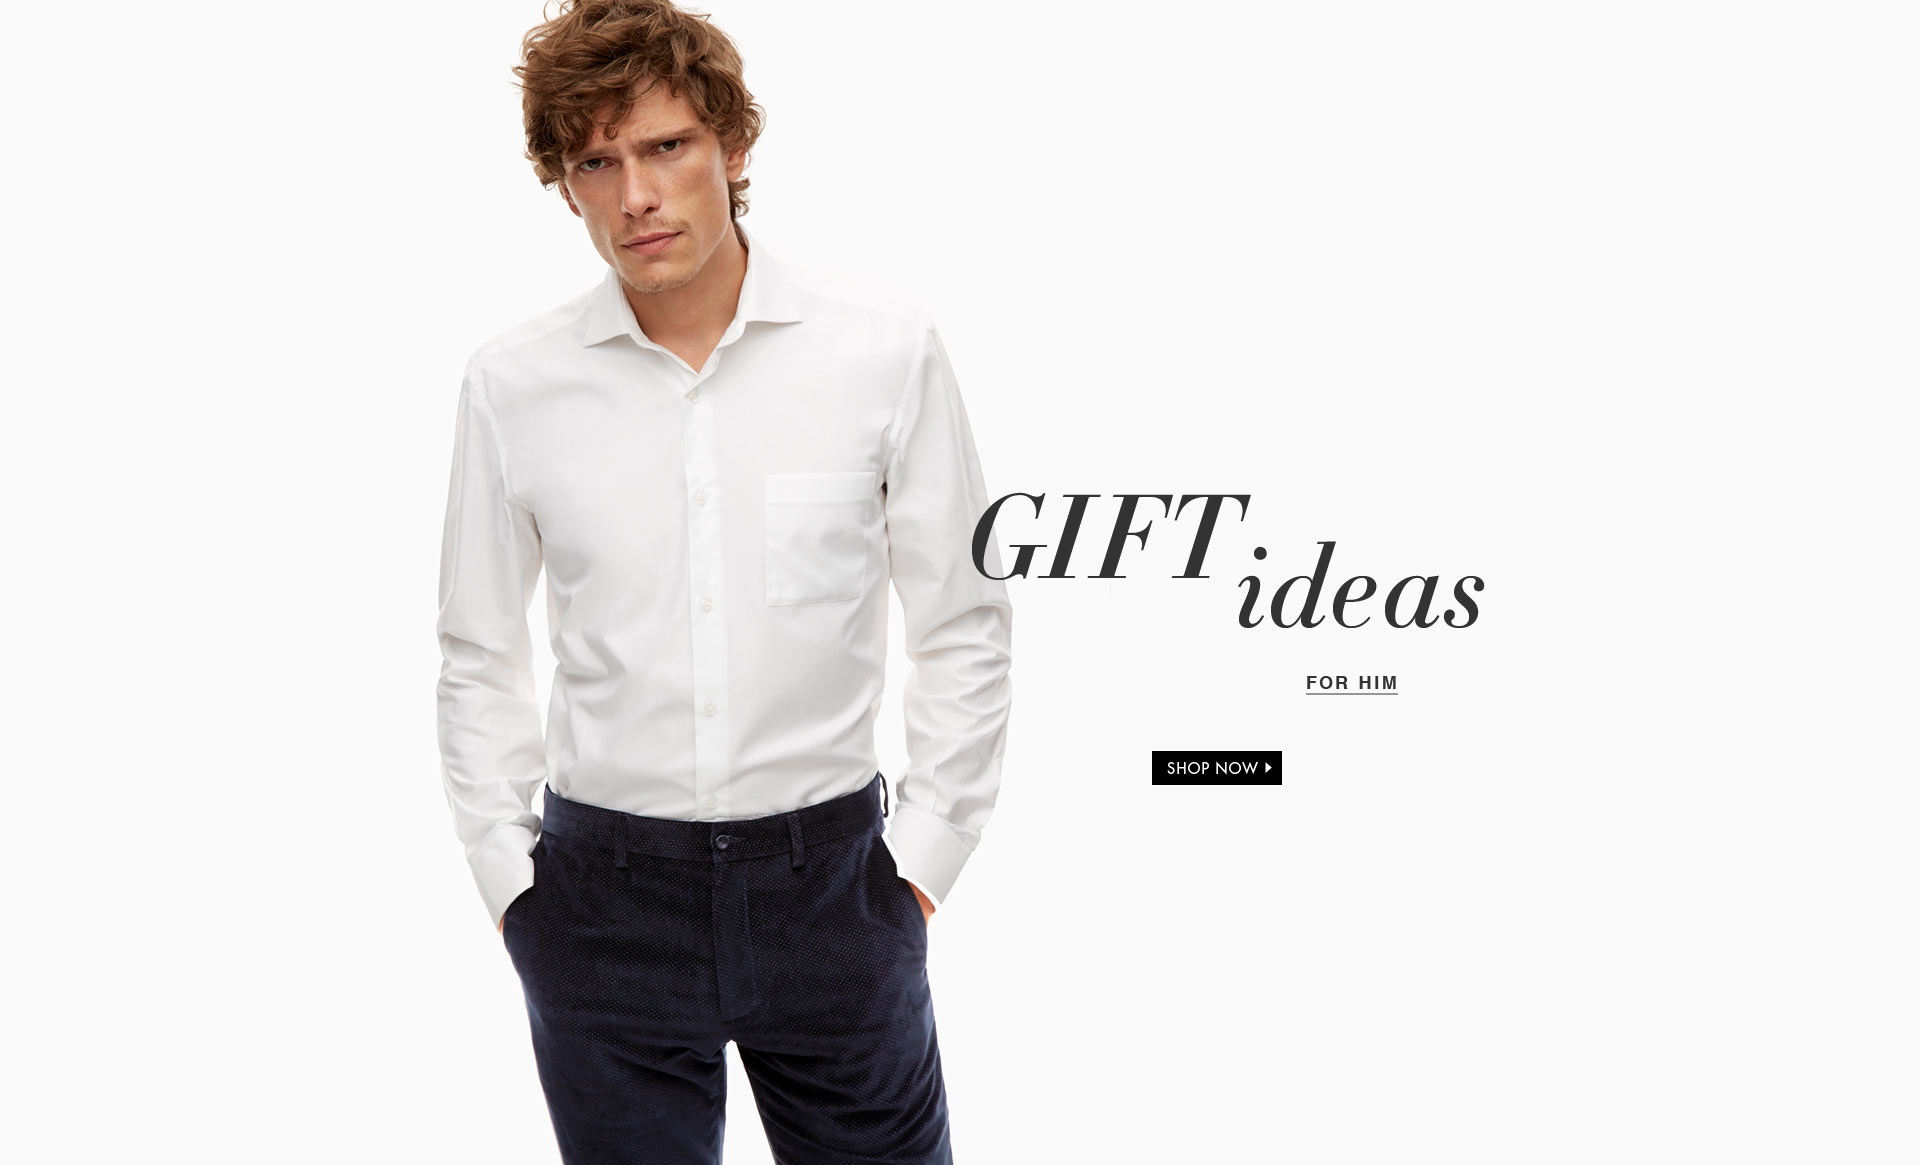 Gift ideas for him at Adolfo Dominguez